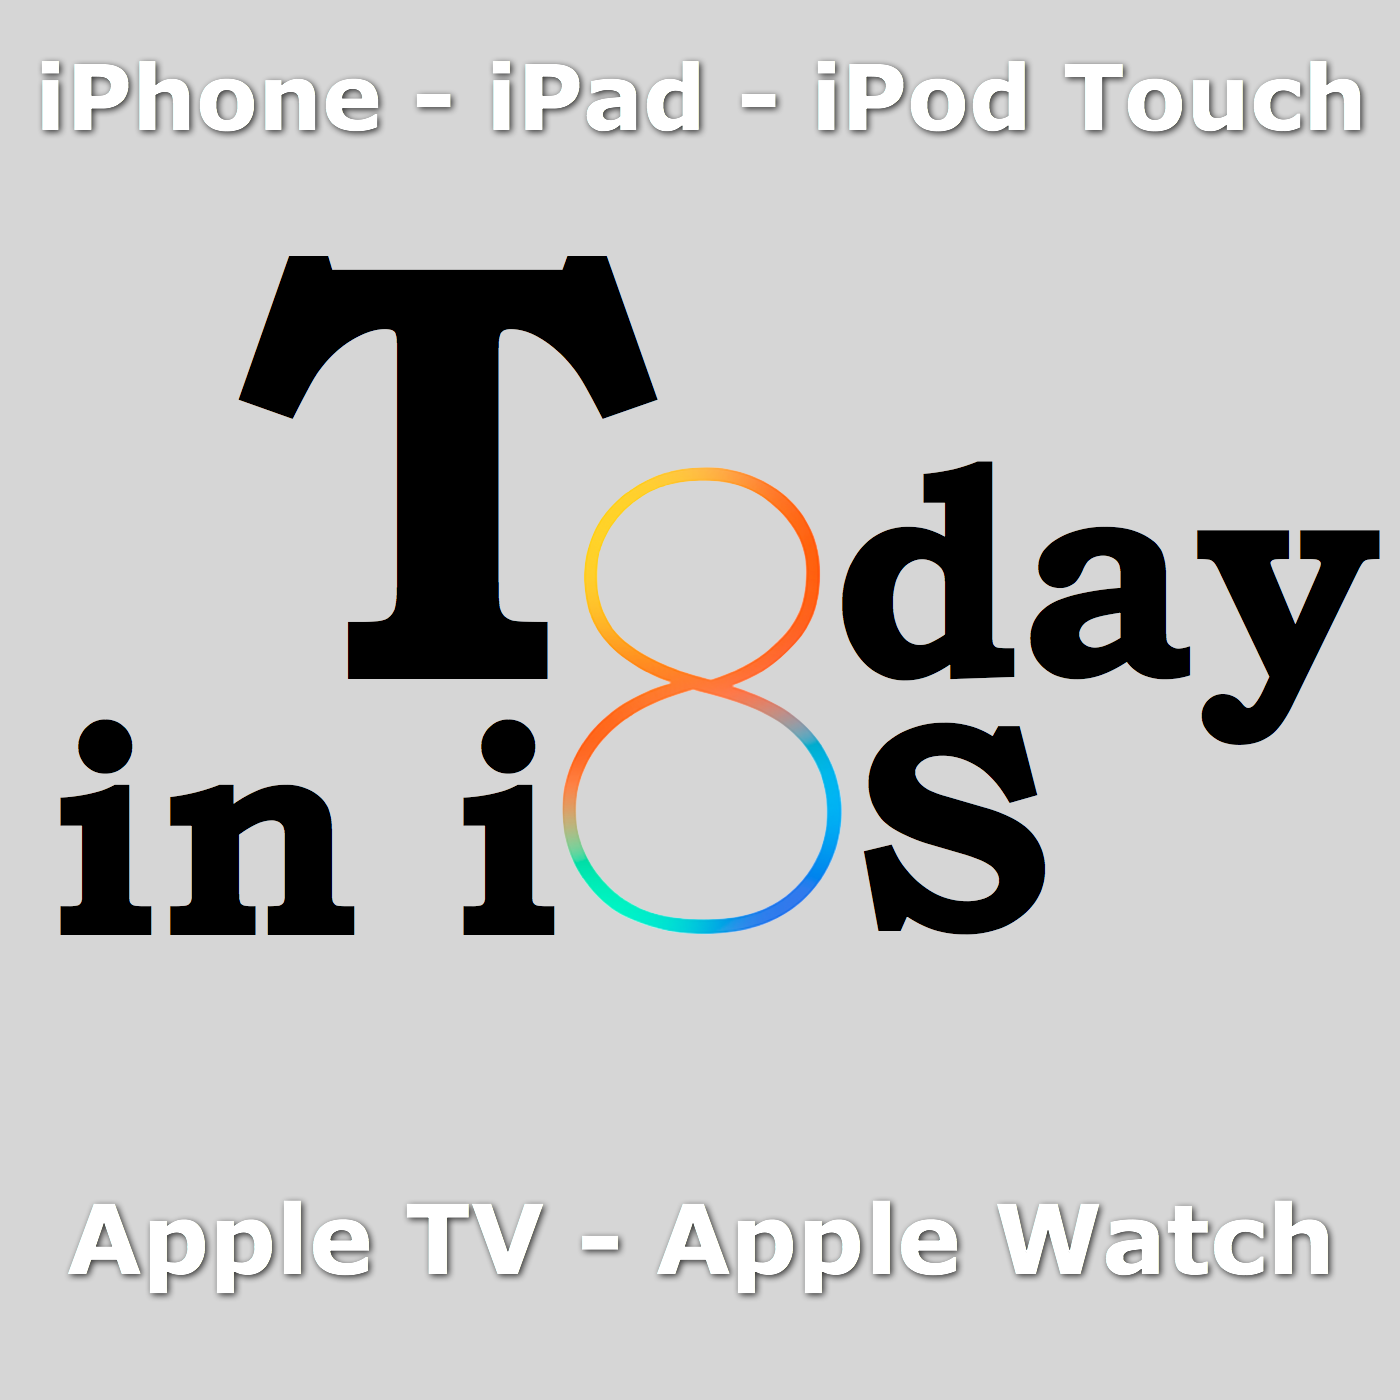 Today in iOS Podcast - The Unofficial iOS, iPhone, iPad, Apple Watch and iPod Touch News and iPhone Apps Podcast